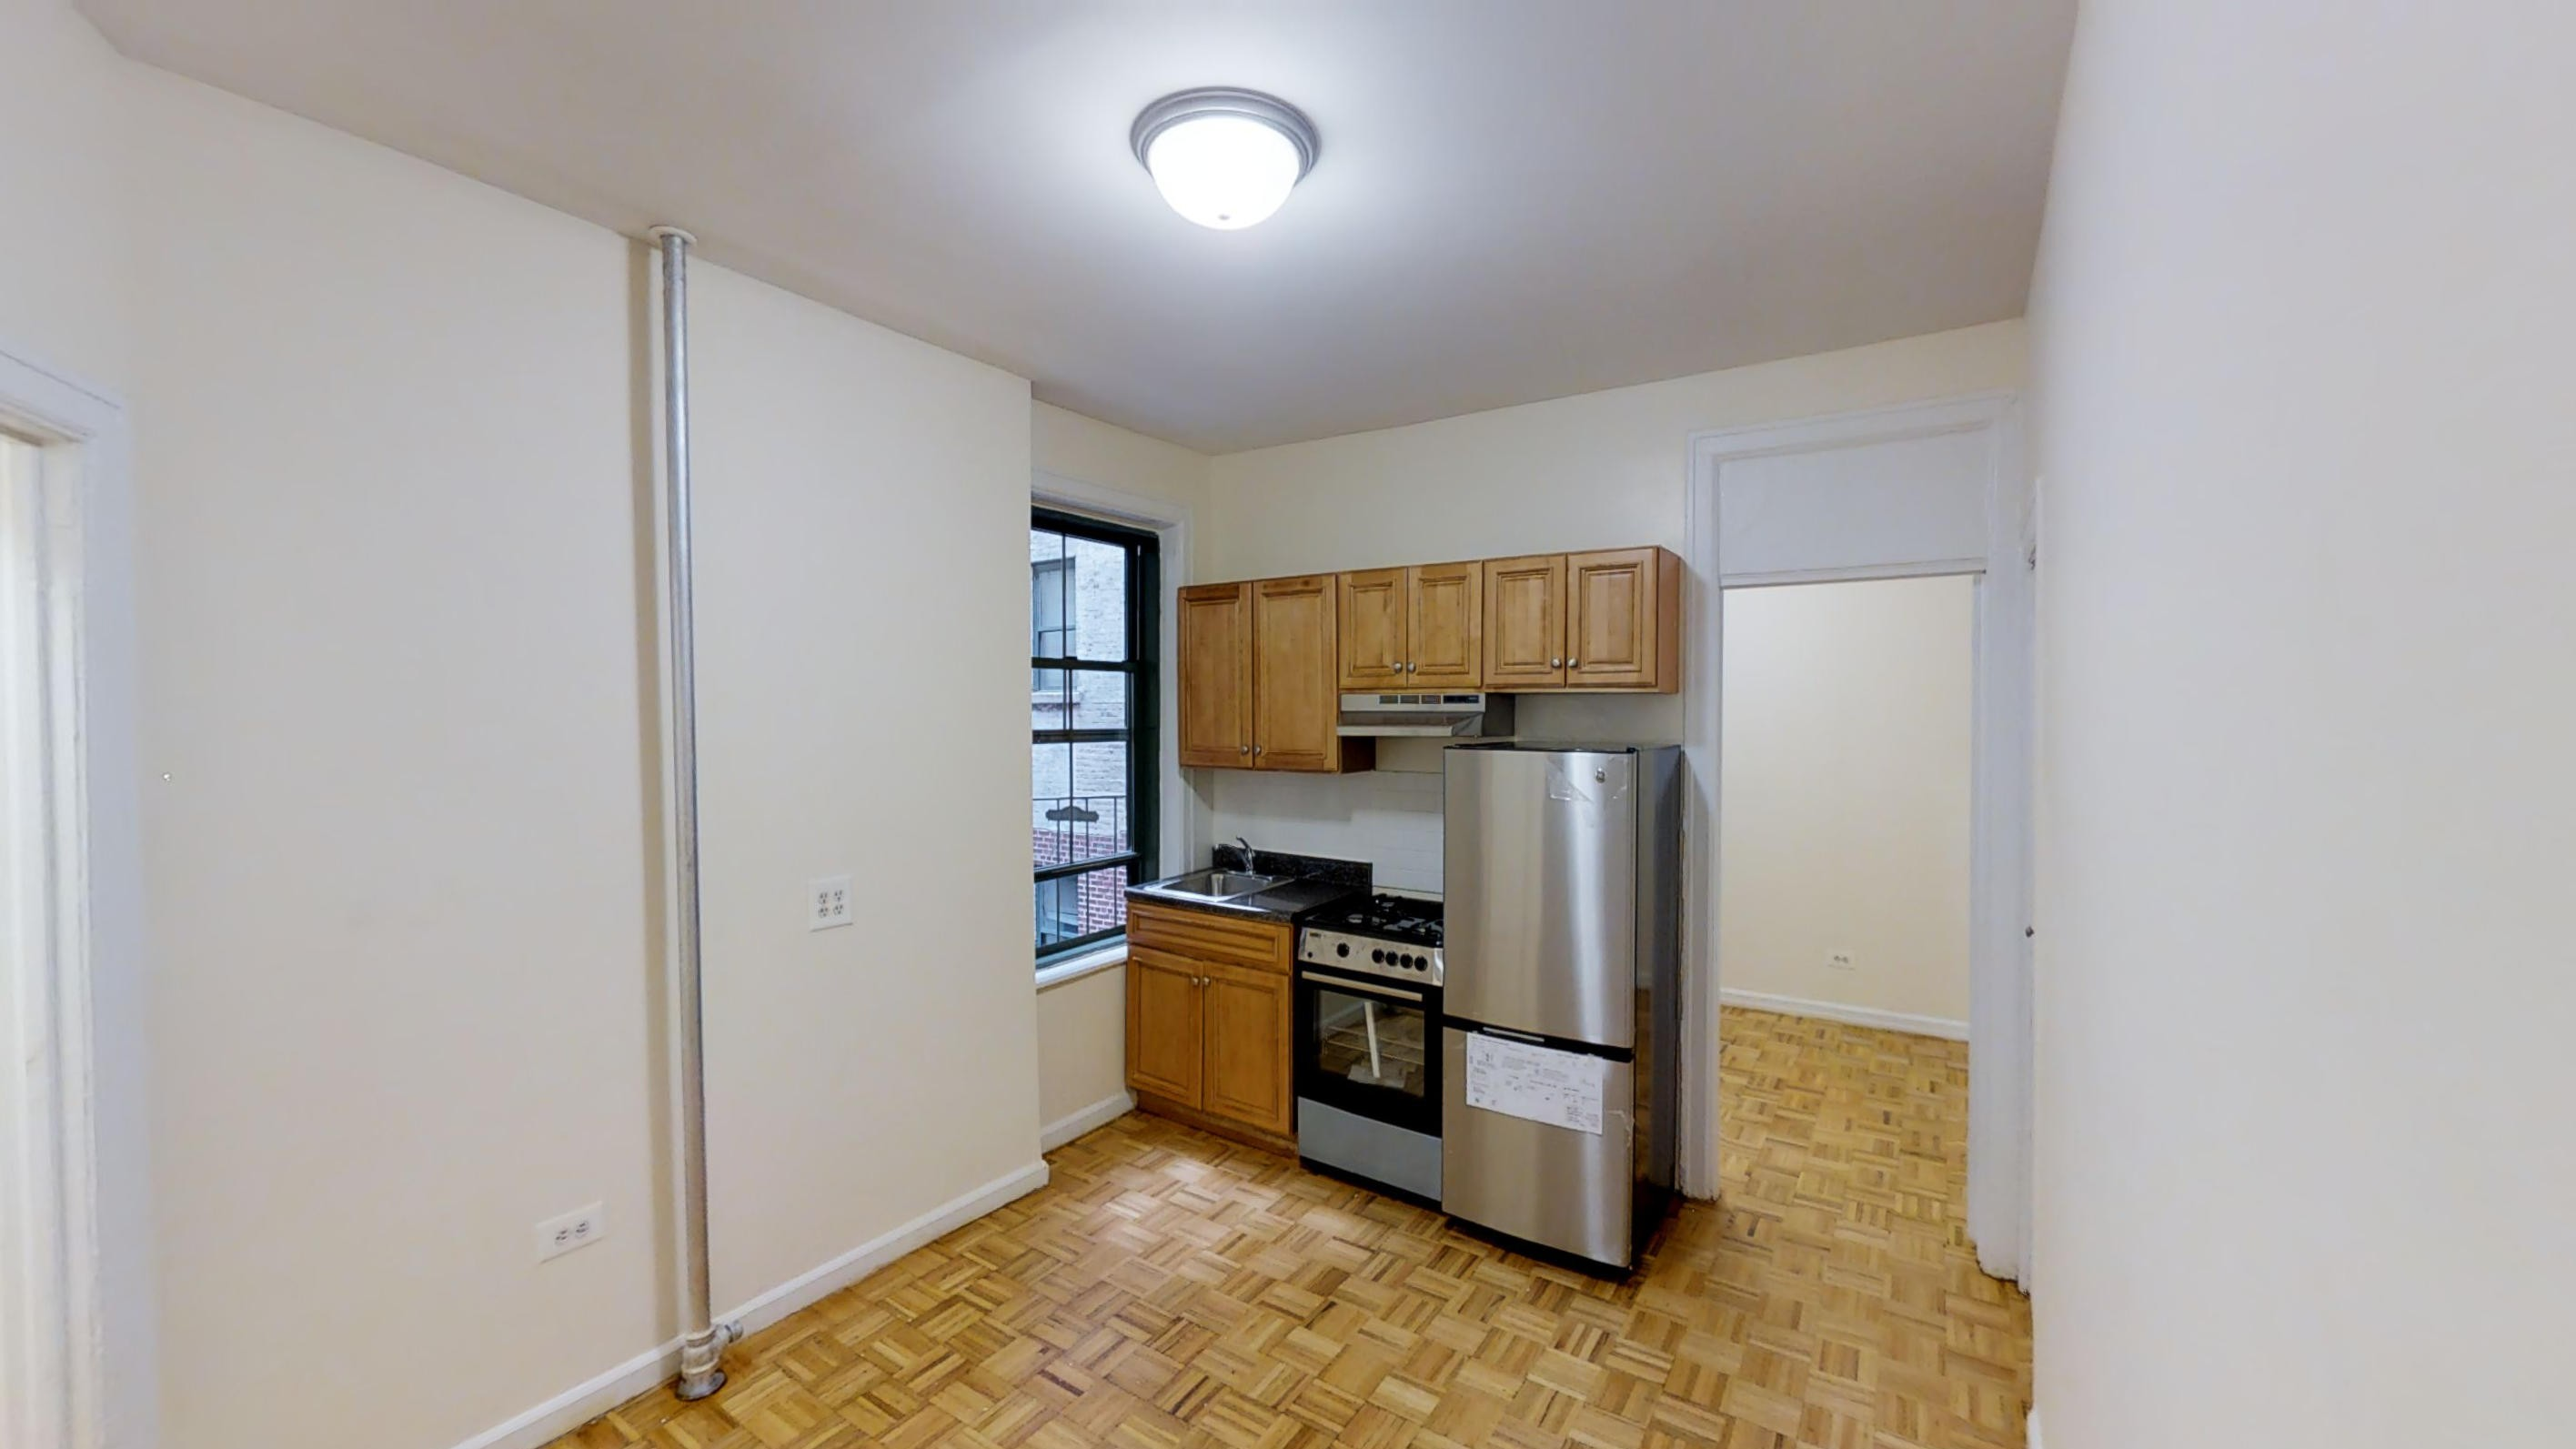 under newark bedroom in with craigslist illinois nj apartment for apartments cheap beautiful elegant of bronx the chicago rent